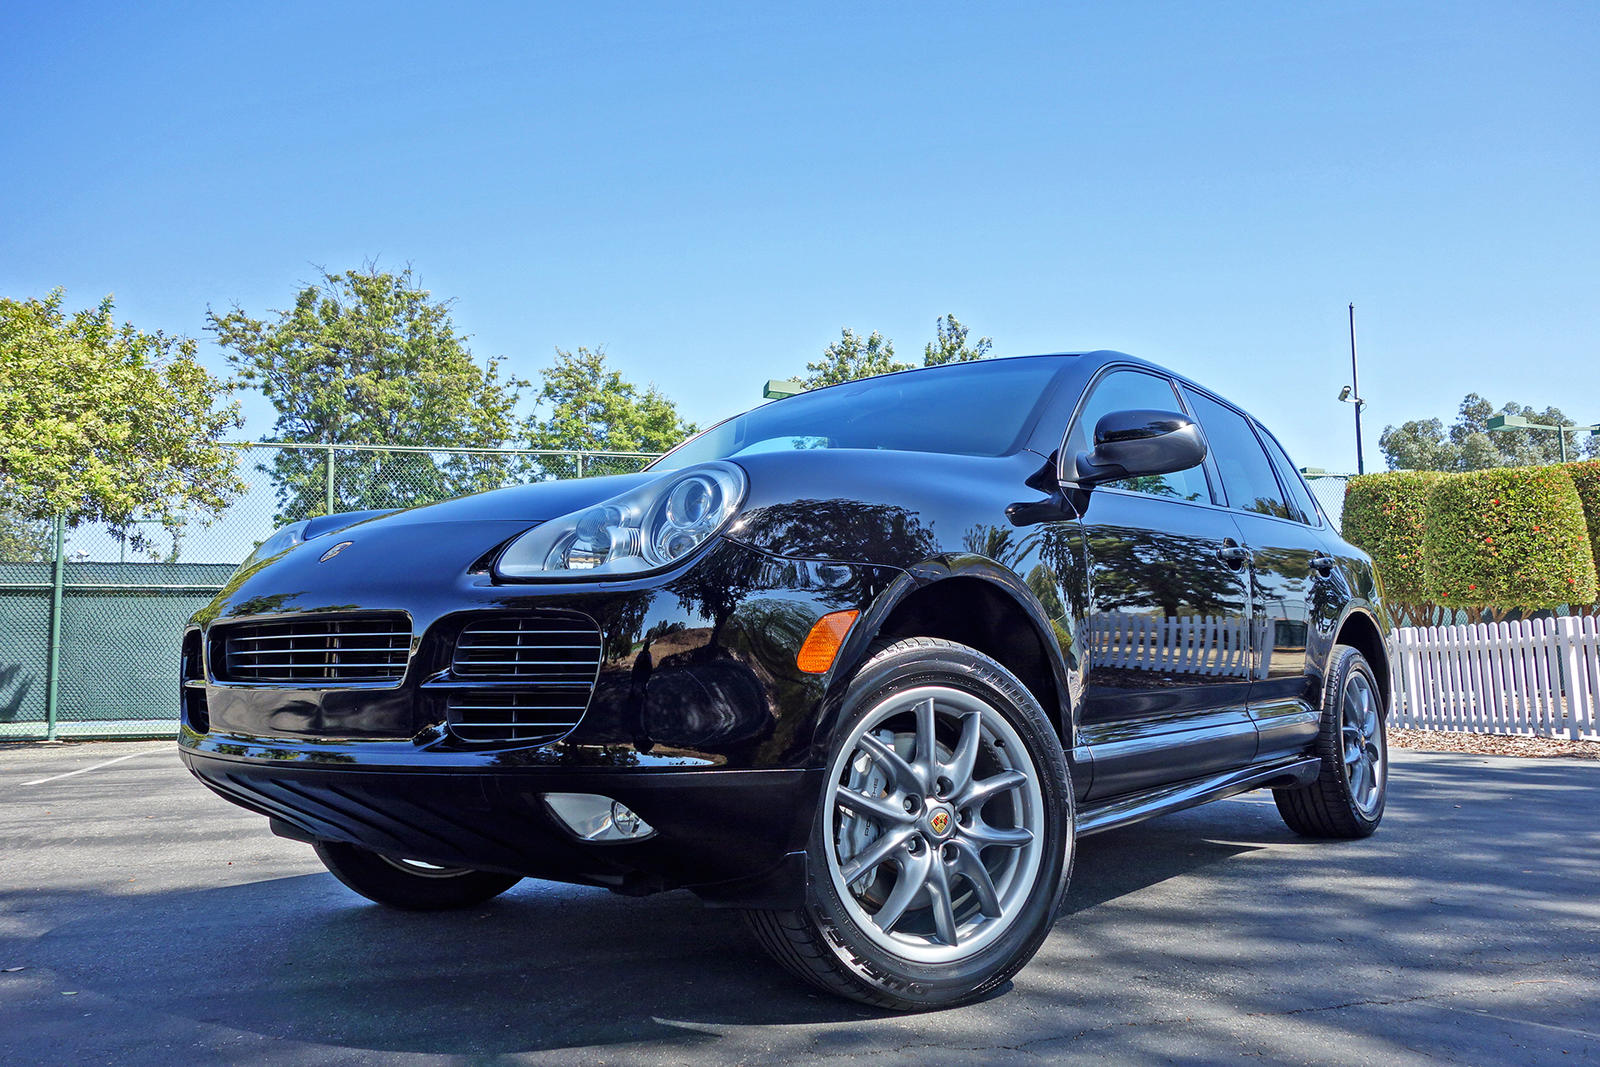 2019 Porsche Cayenne S Titanium photo - 3